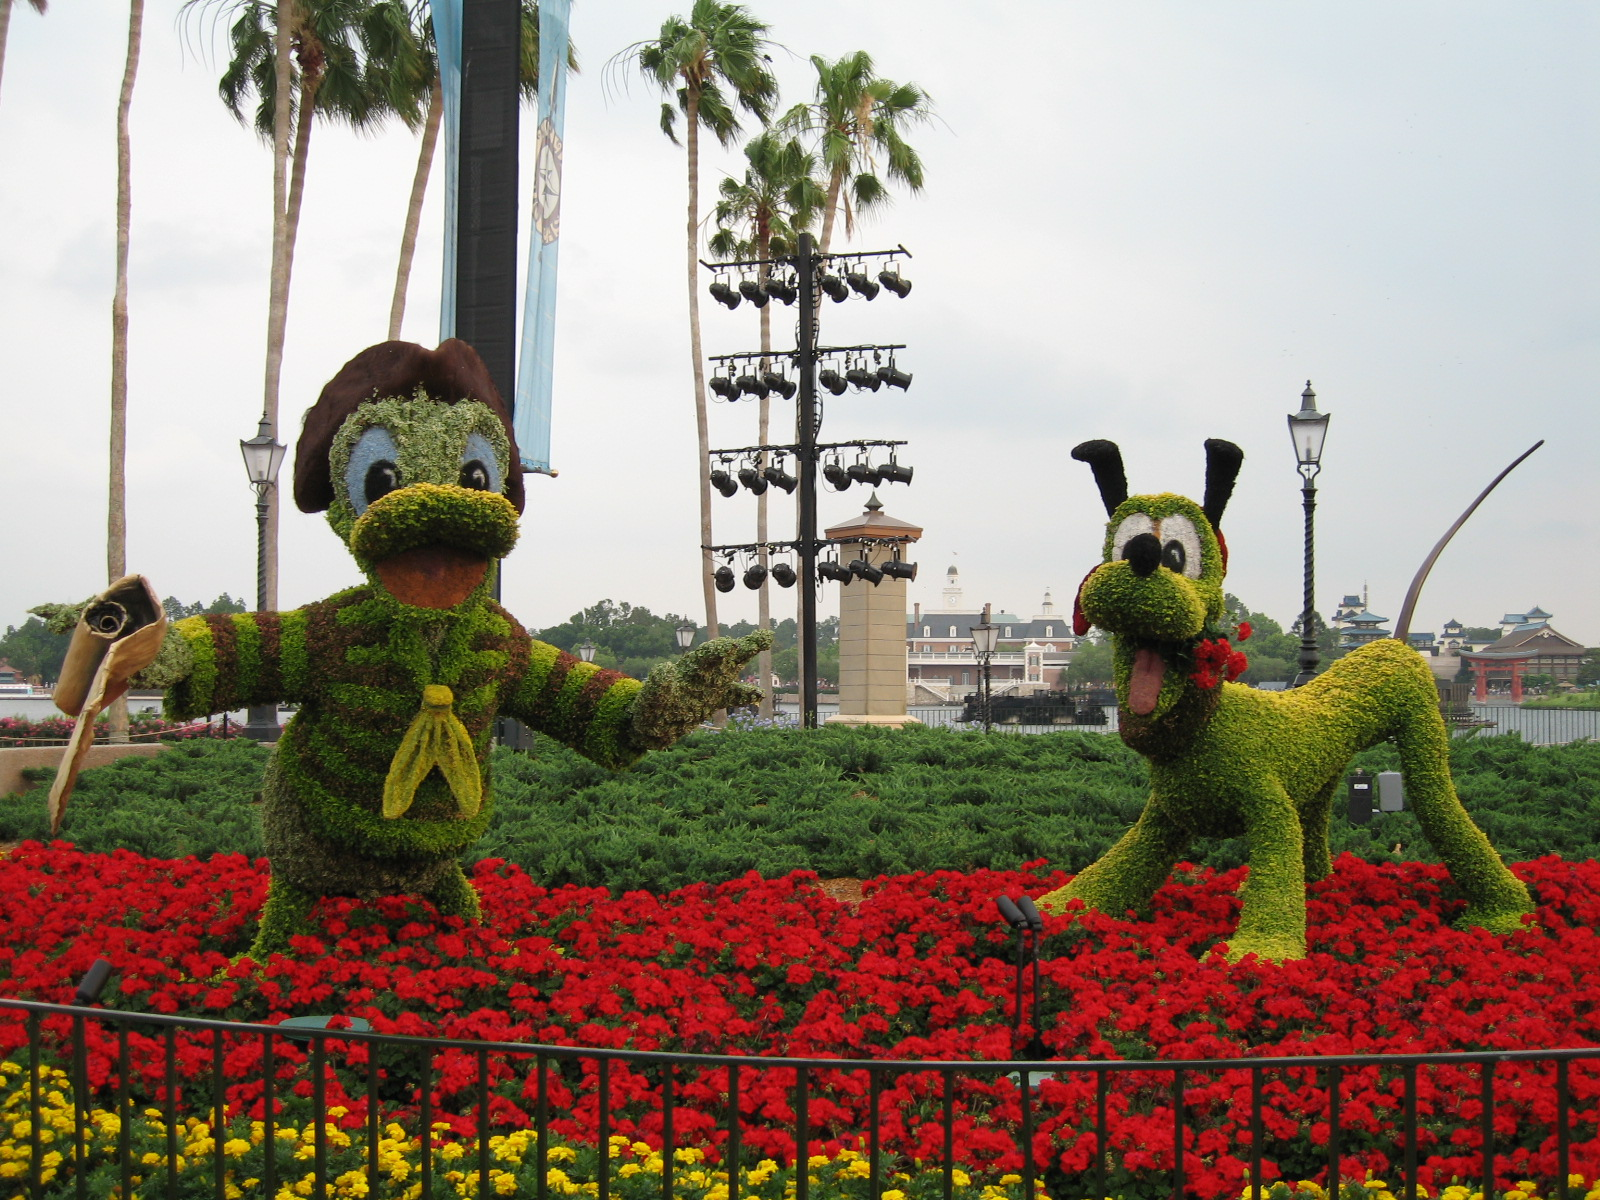 Flower and Garden Festival 2007 Donald and Pluto Topiary